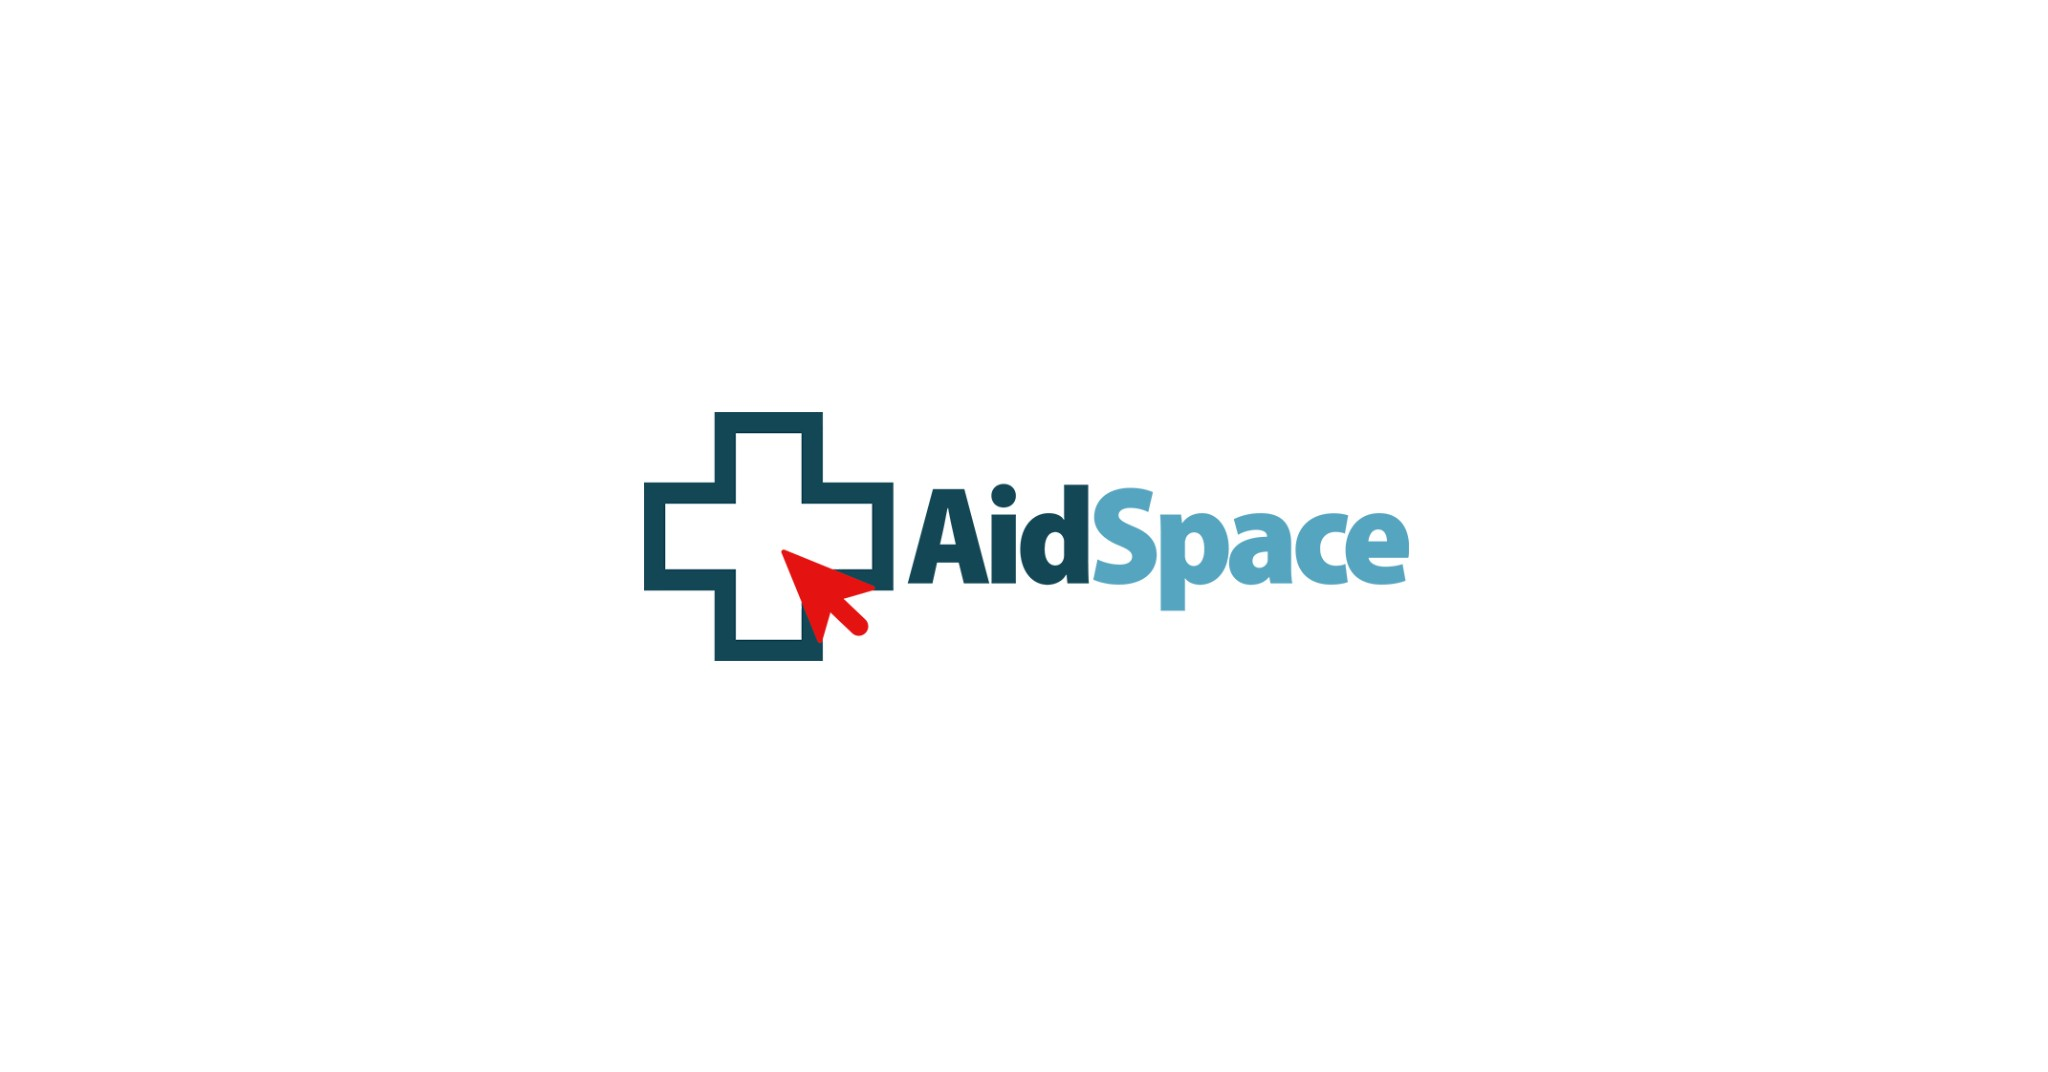 AidSpace